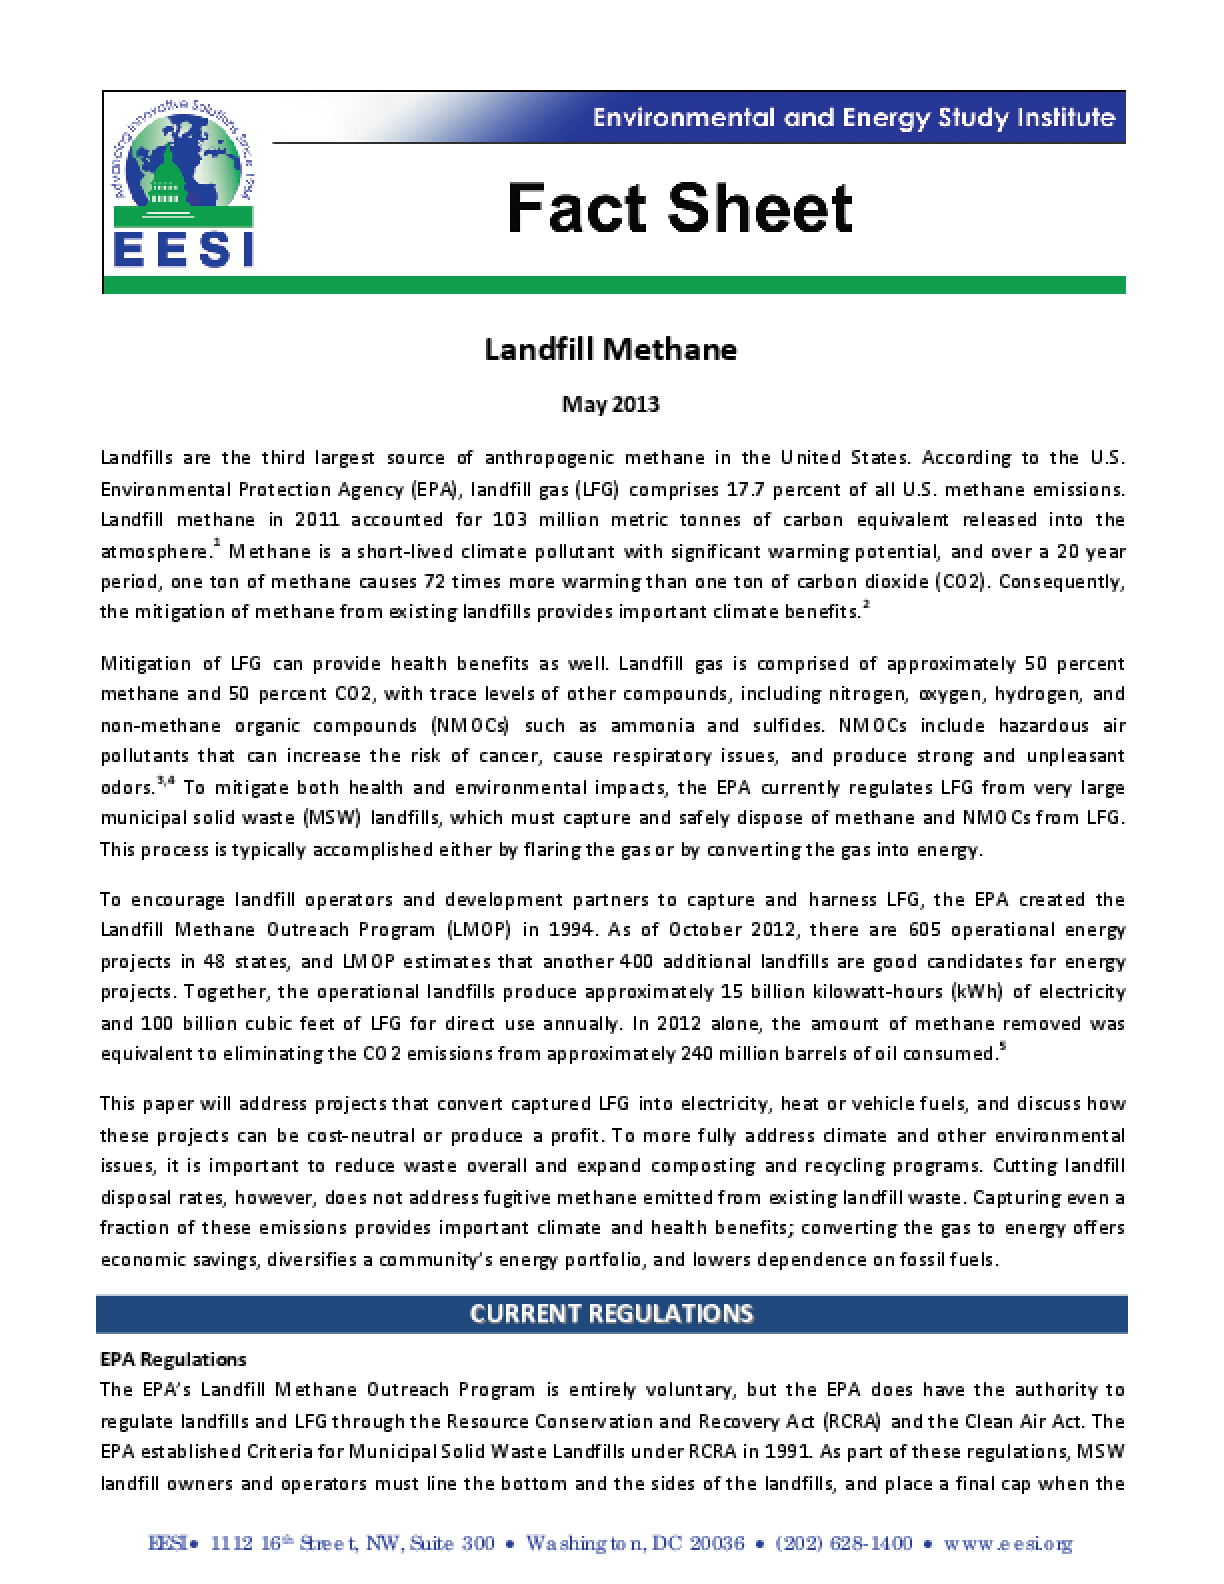 Fact Sheet: Methane and Landfill Gas